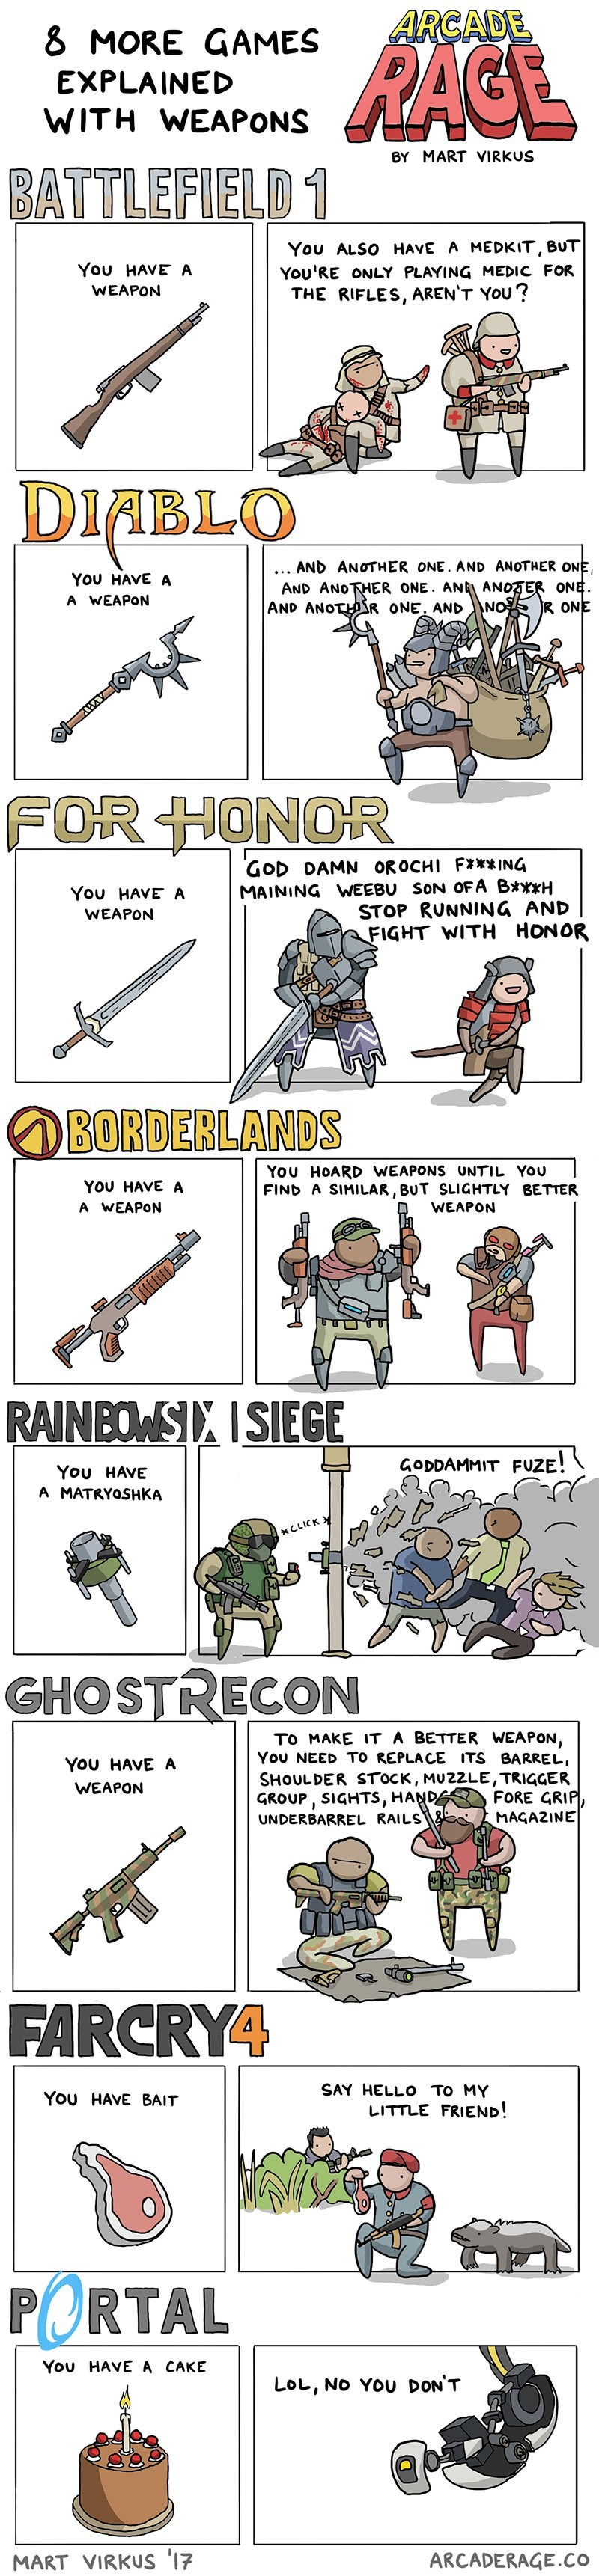 gaming meme explained with weapons